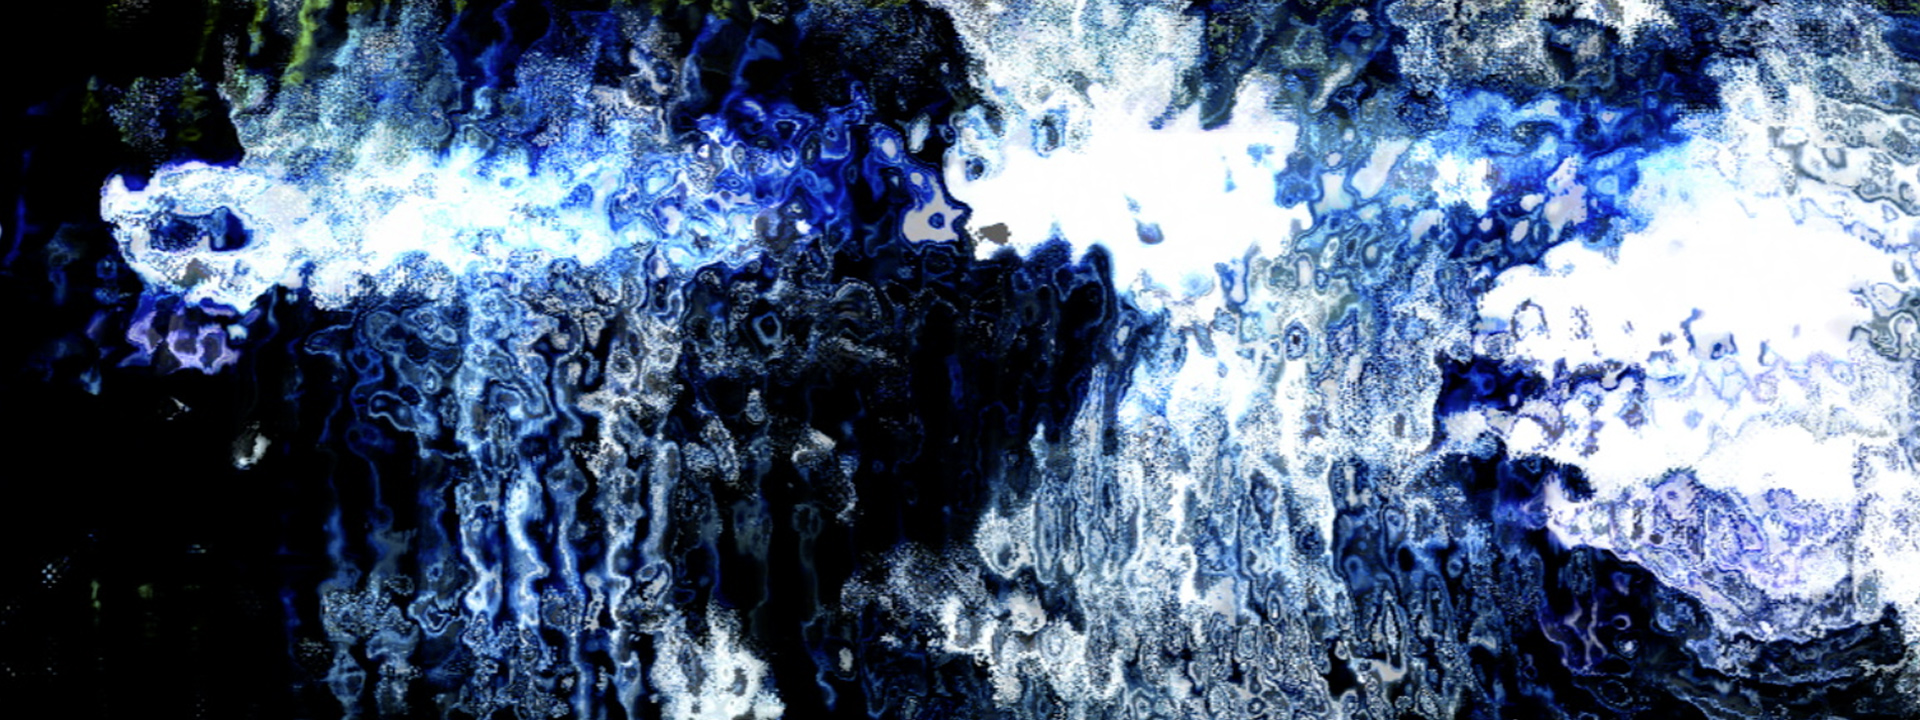 Abstract still from video